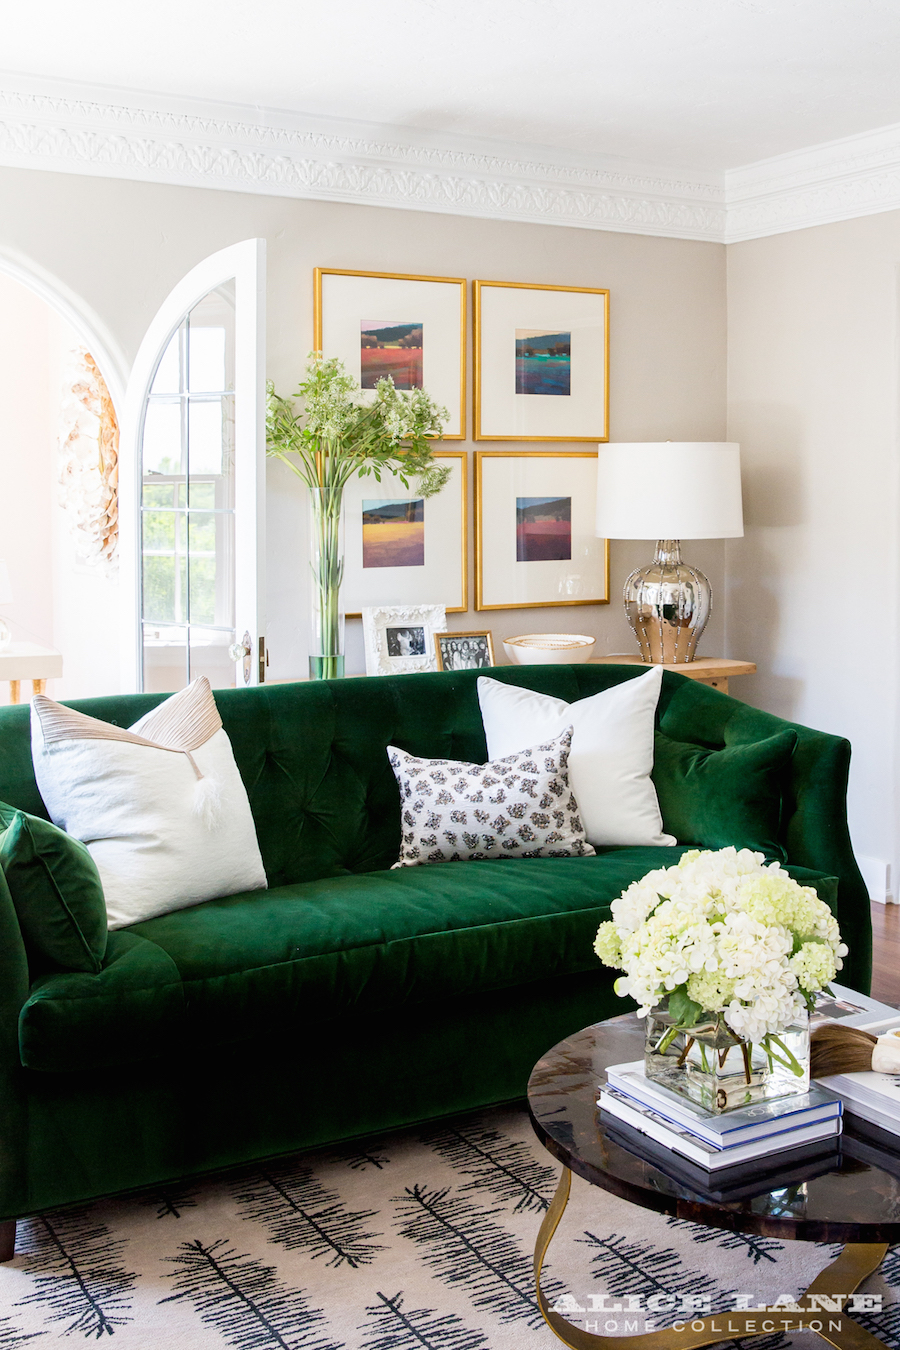 Green Velvet Sofa with White pillows